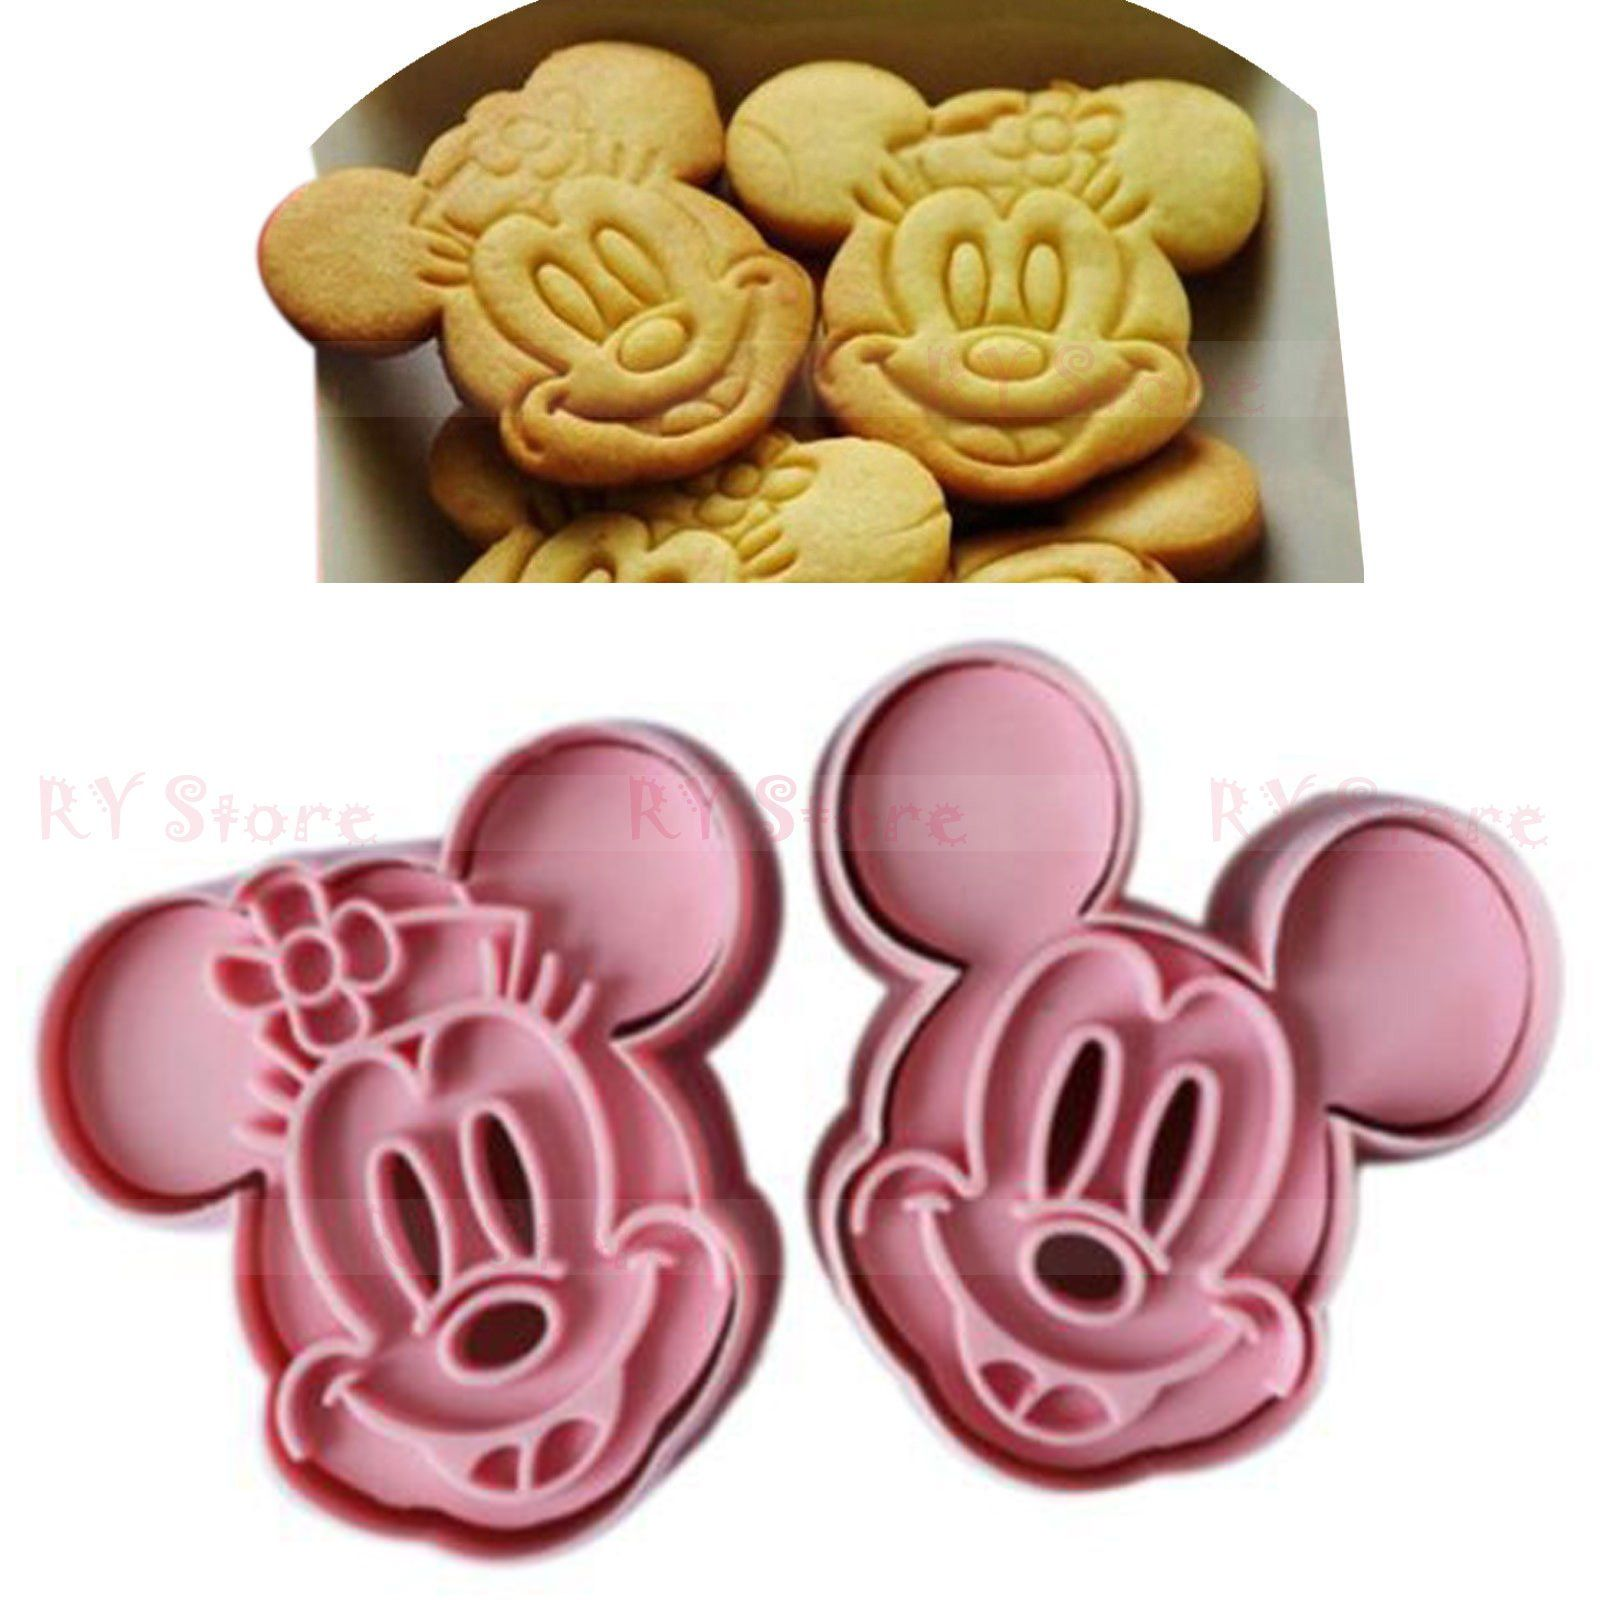 Minnie Mouse Cookie Pastry Biscuit Cutter Icing Fondant Baking Bake Kitchen Cute